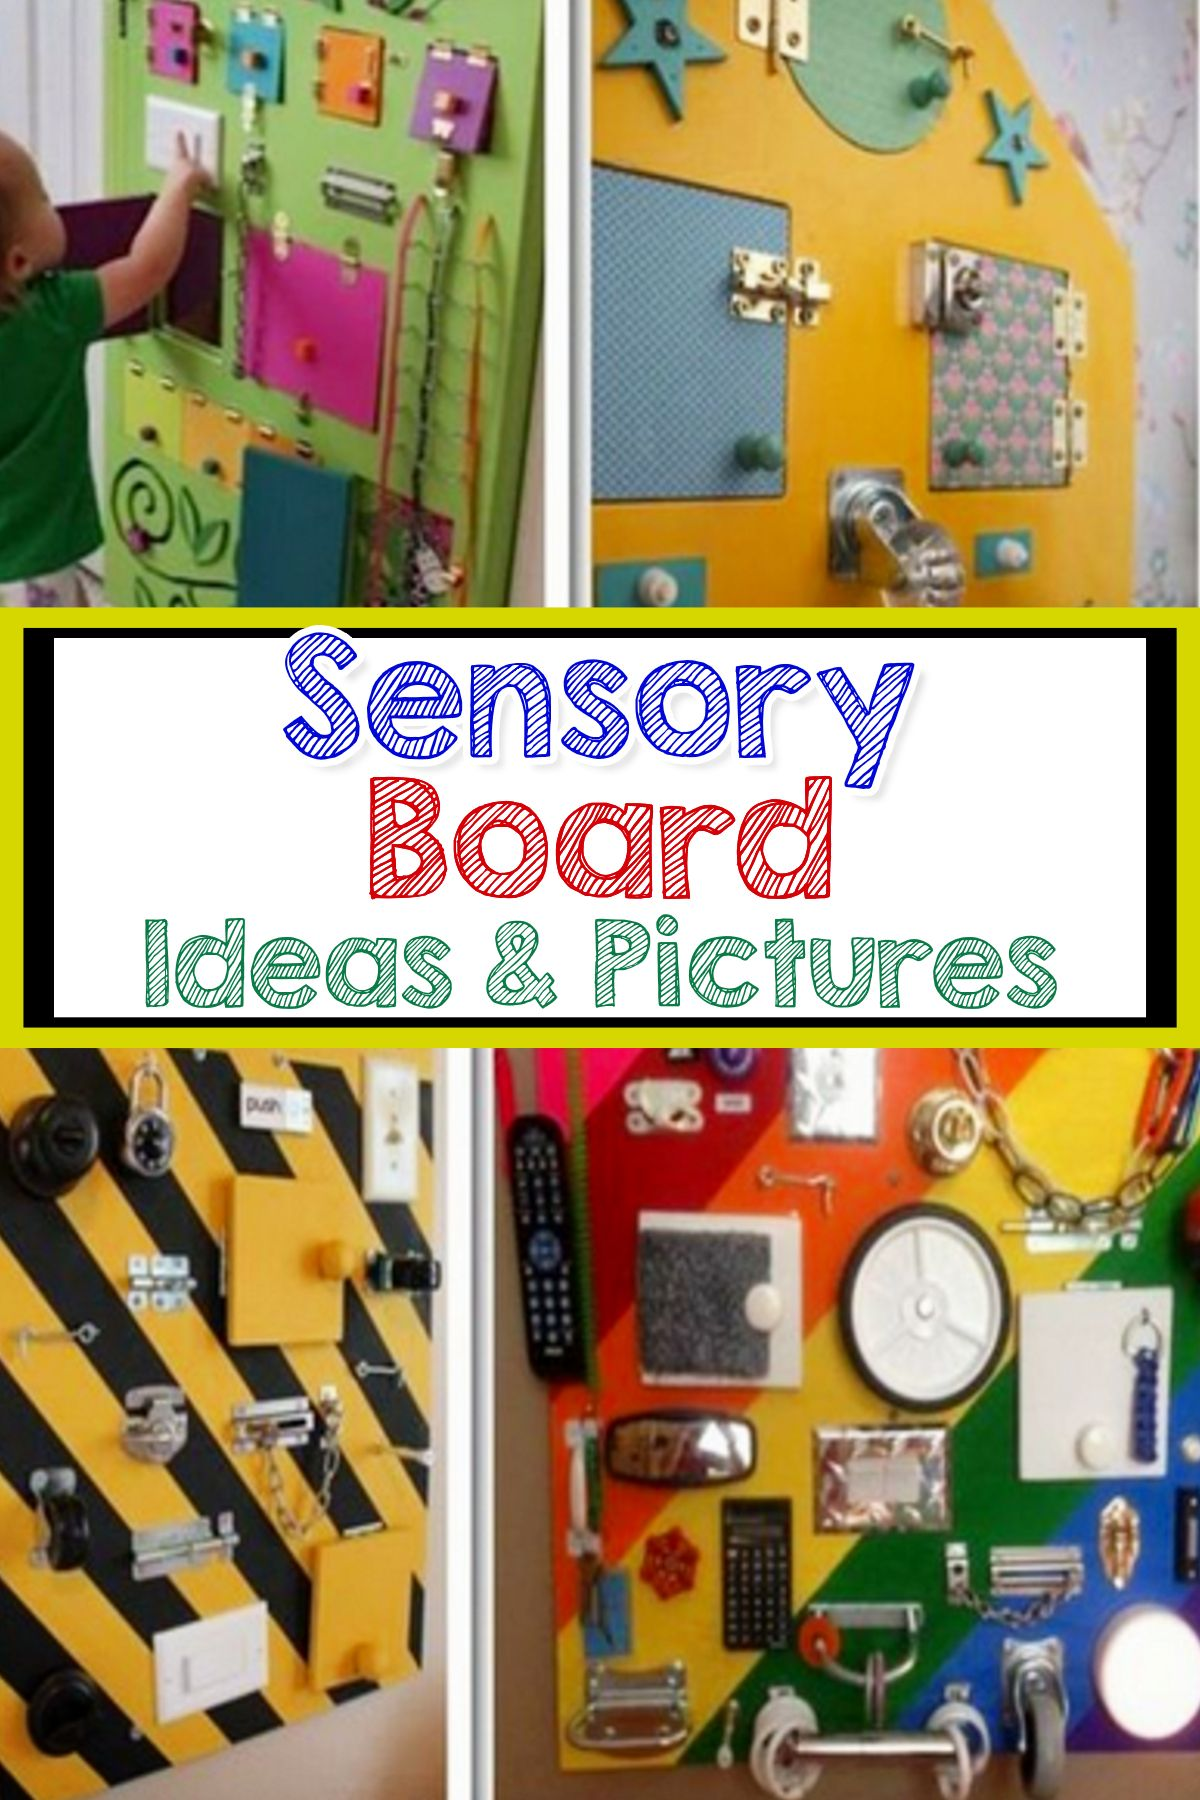 57 Sensory Board Ideas For Toddlers Easy Diy Activity Boards